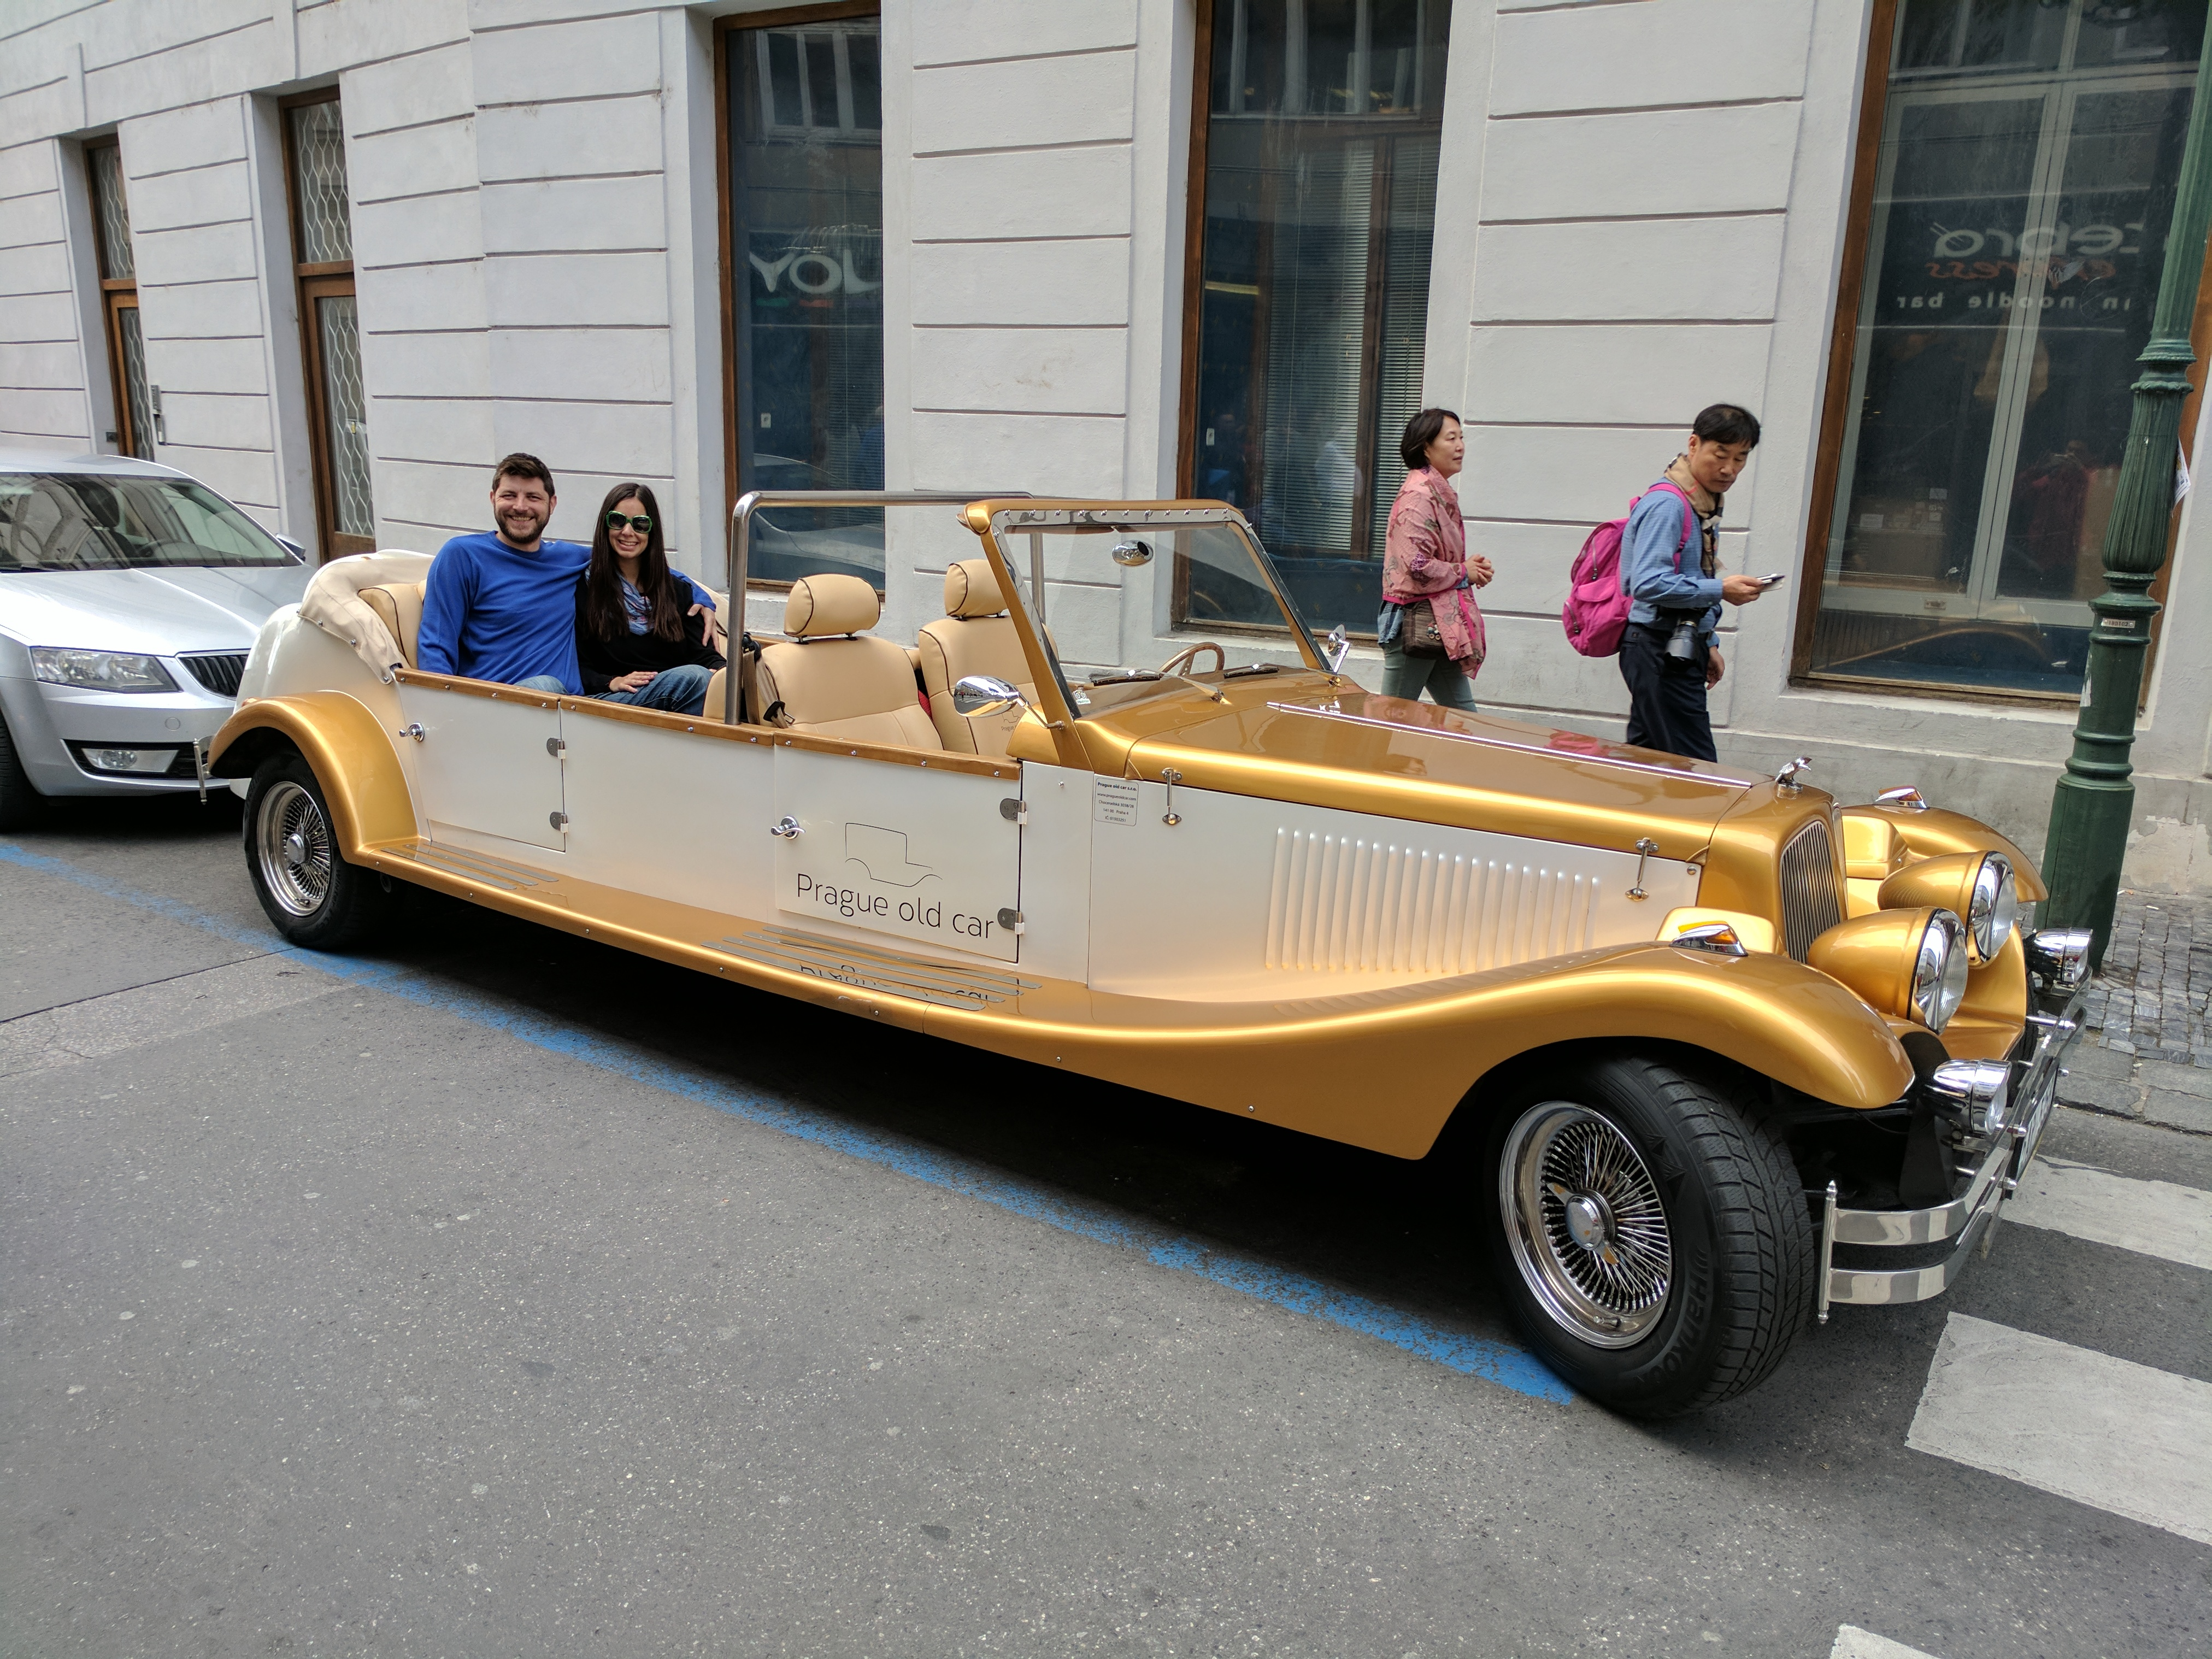 A stunning retro vehicle tour in Prague - Traveling outside the box